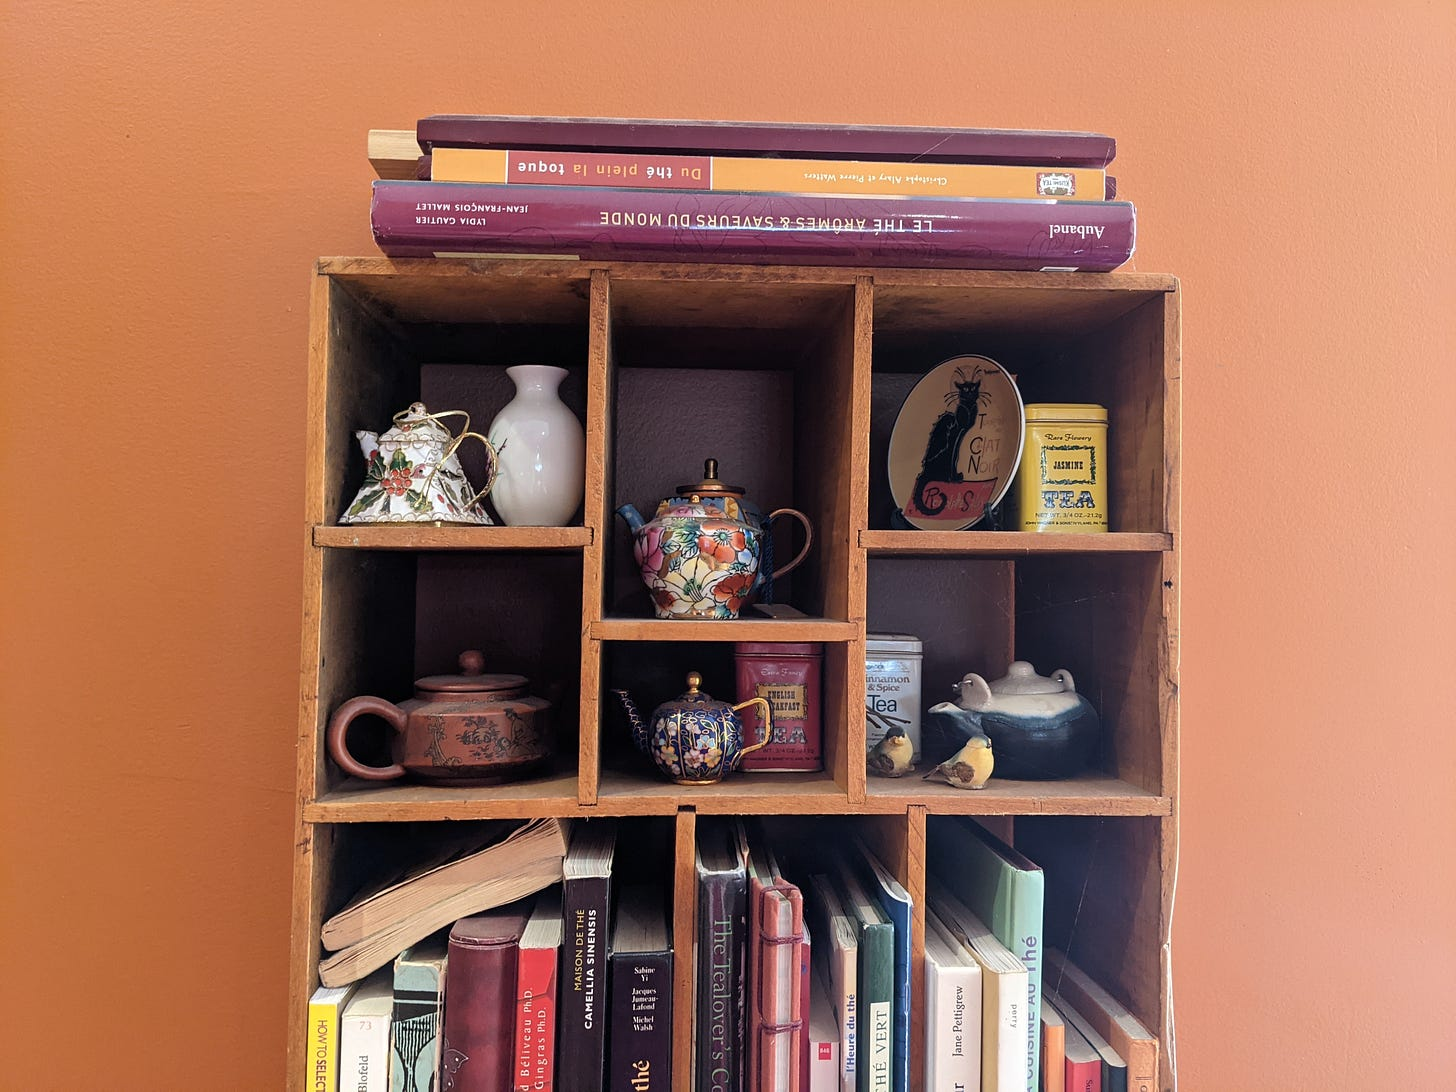 Wooden bookshelf with compartments for tea and shelves for books against orange wall.